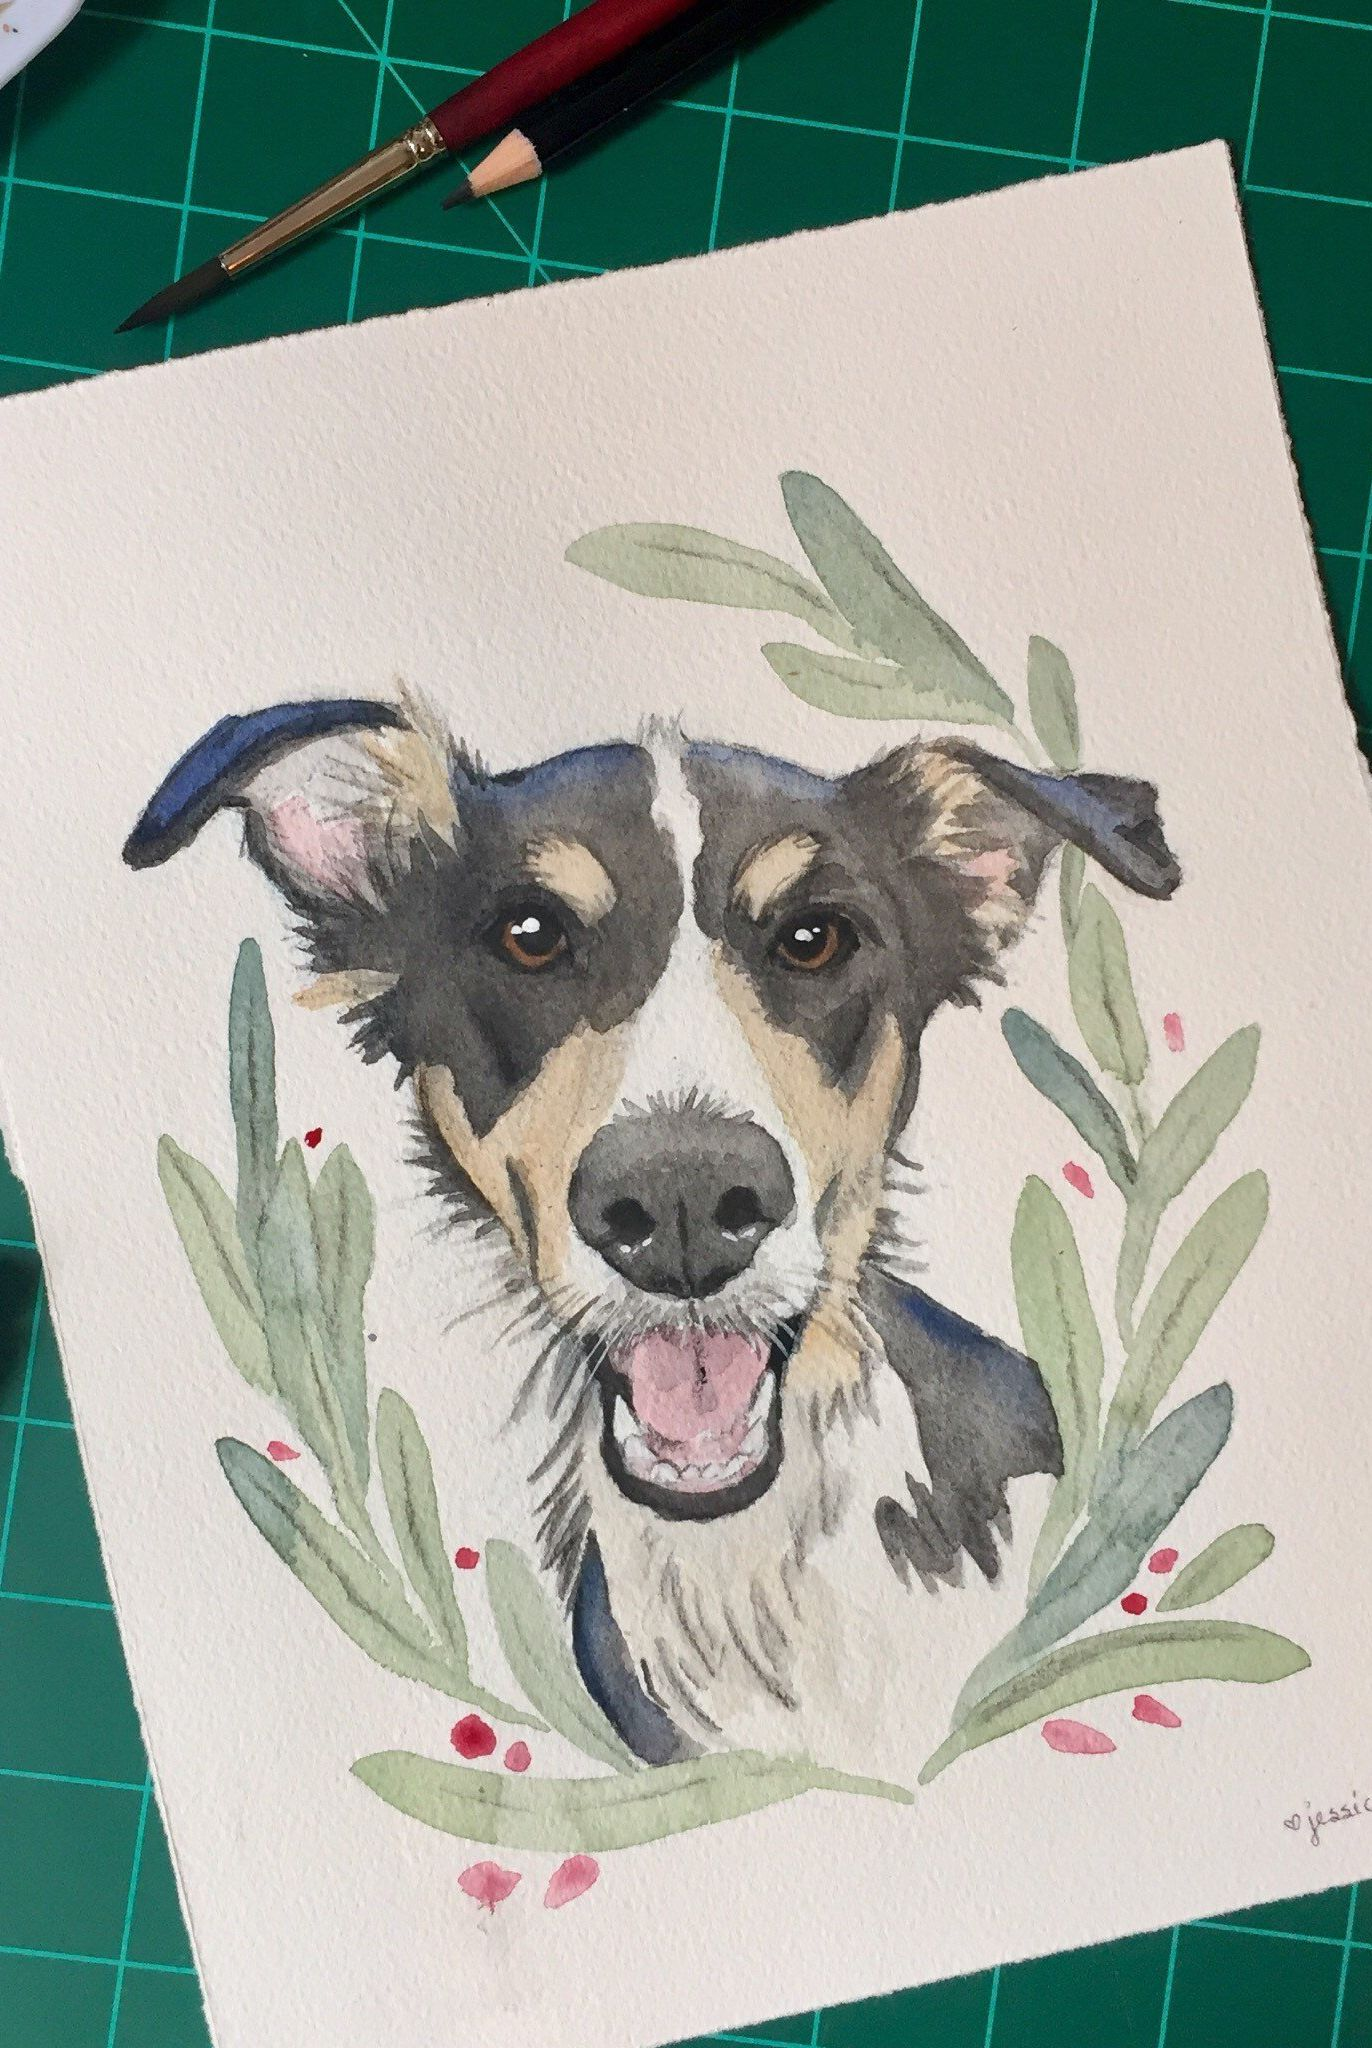 best gifts for mom 2018 - custom pet portrait